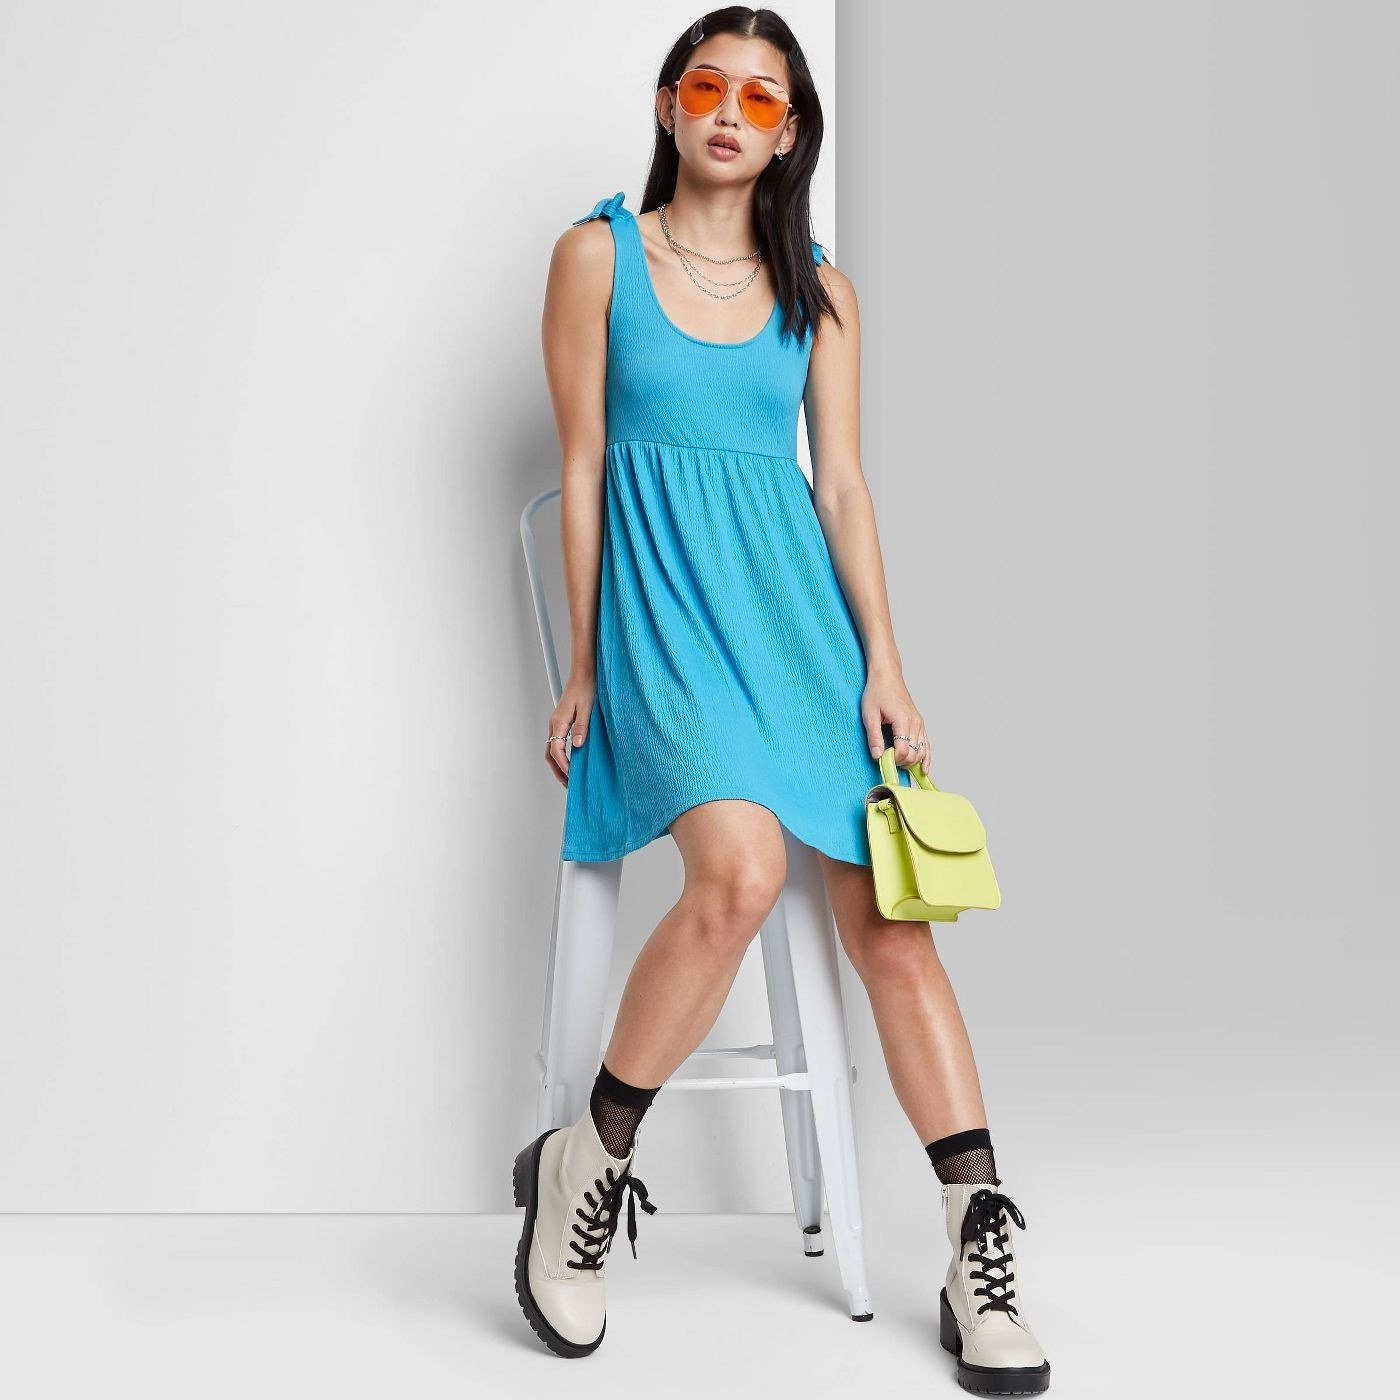 Model wearing blue sleeveless dress, stops above the knee